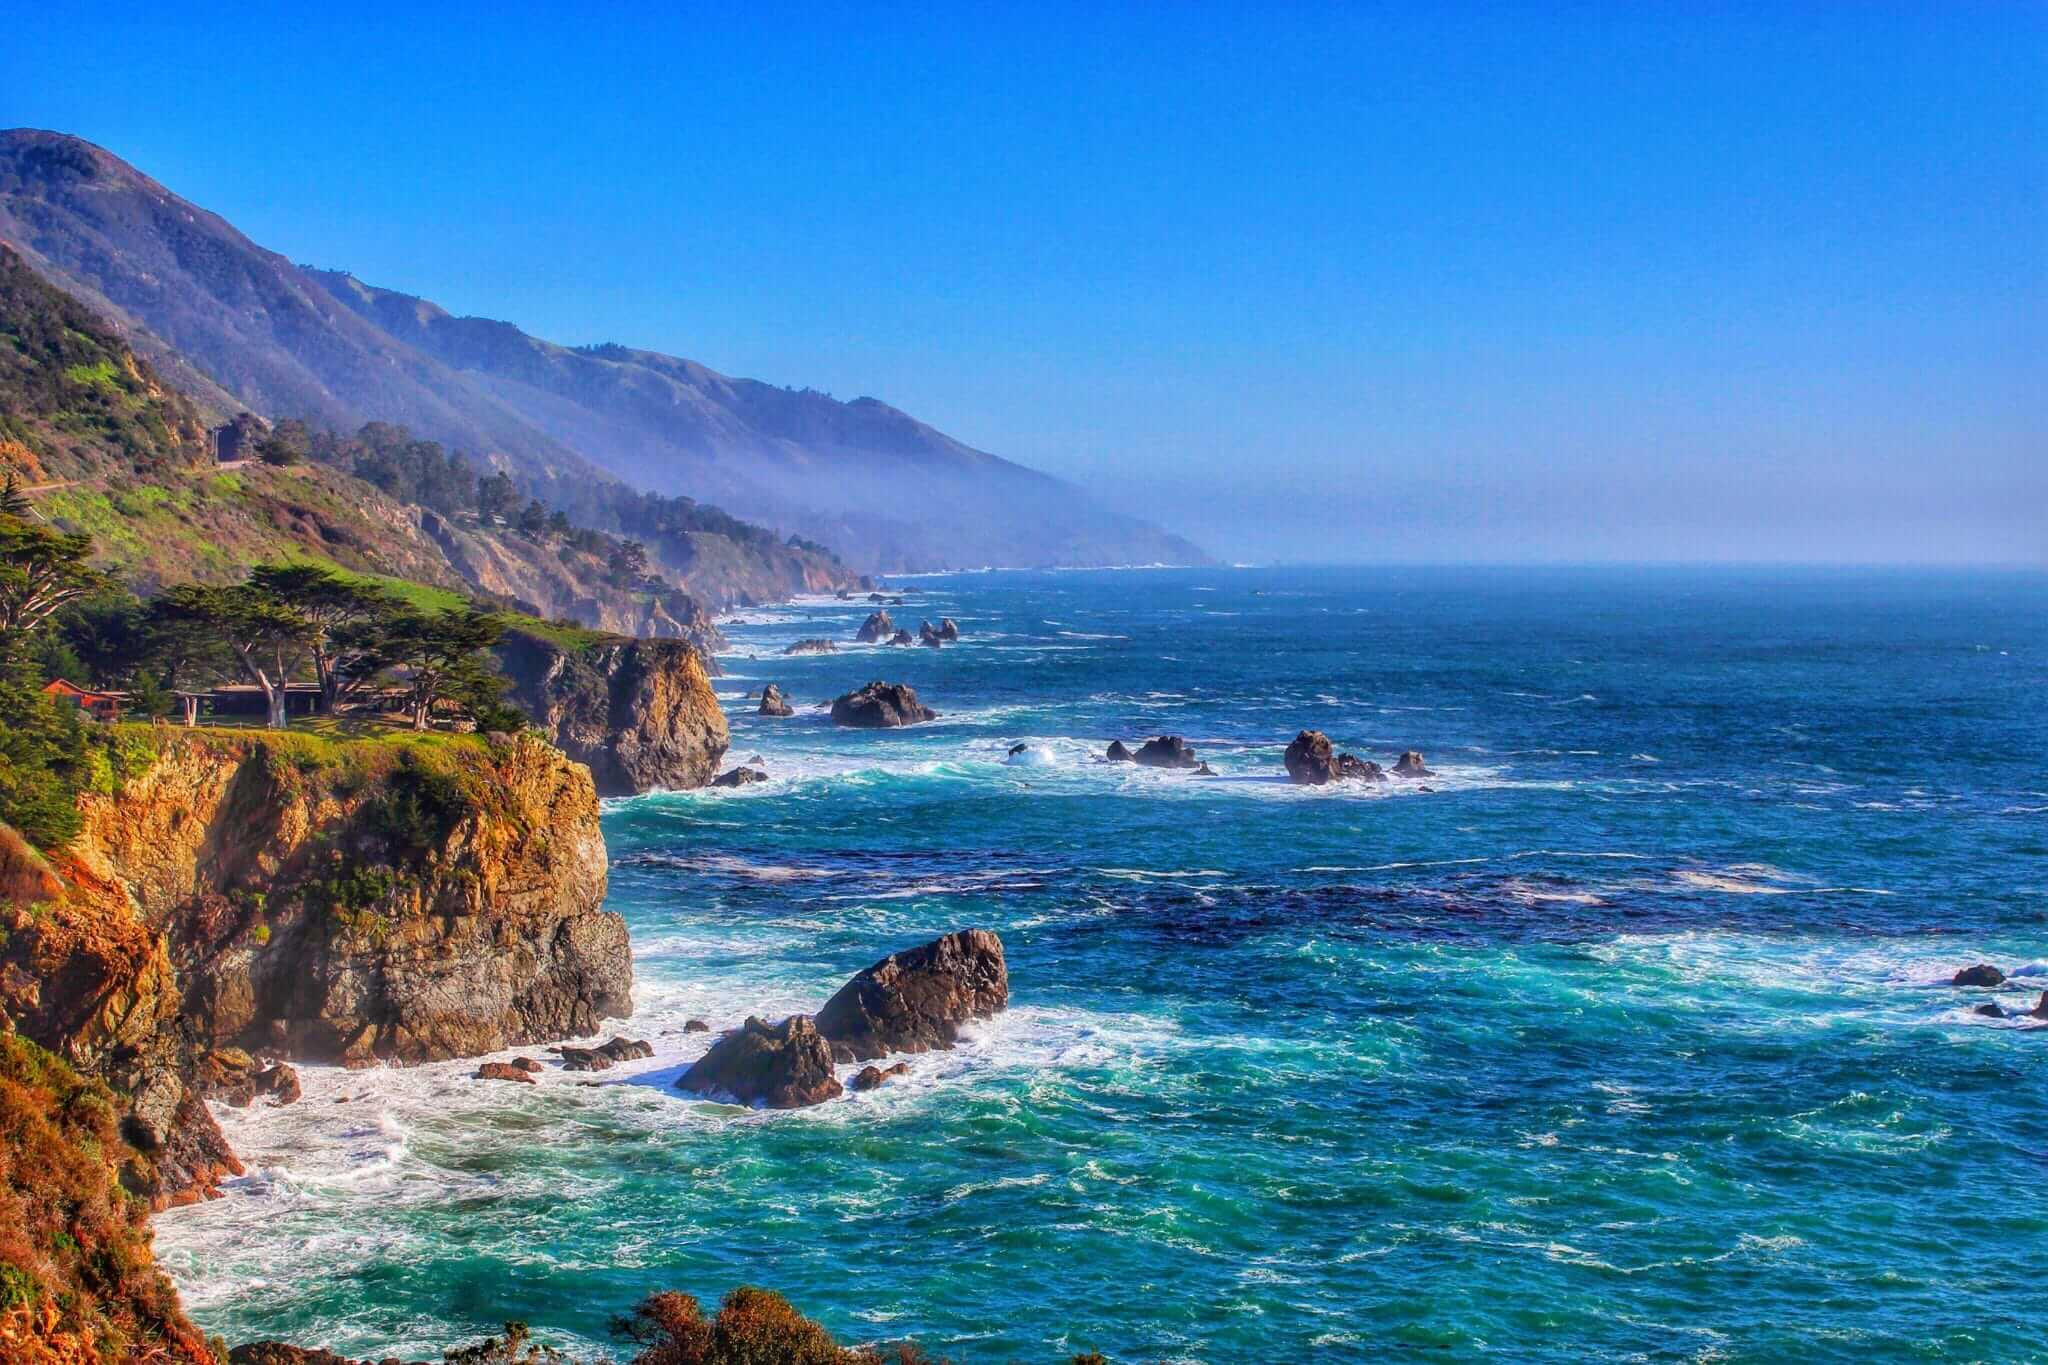 Coastal view of Big Sur with mountains and deep blue ocean crashing against the cliffs